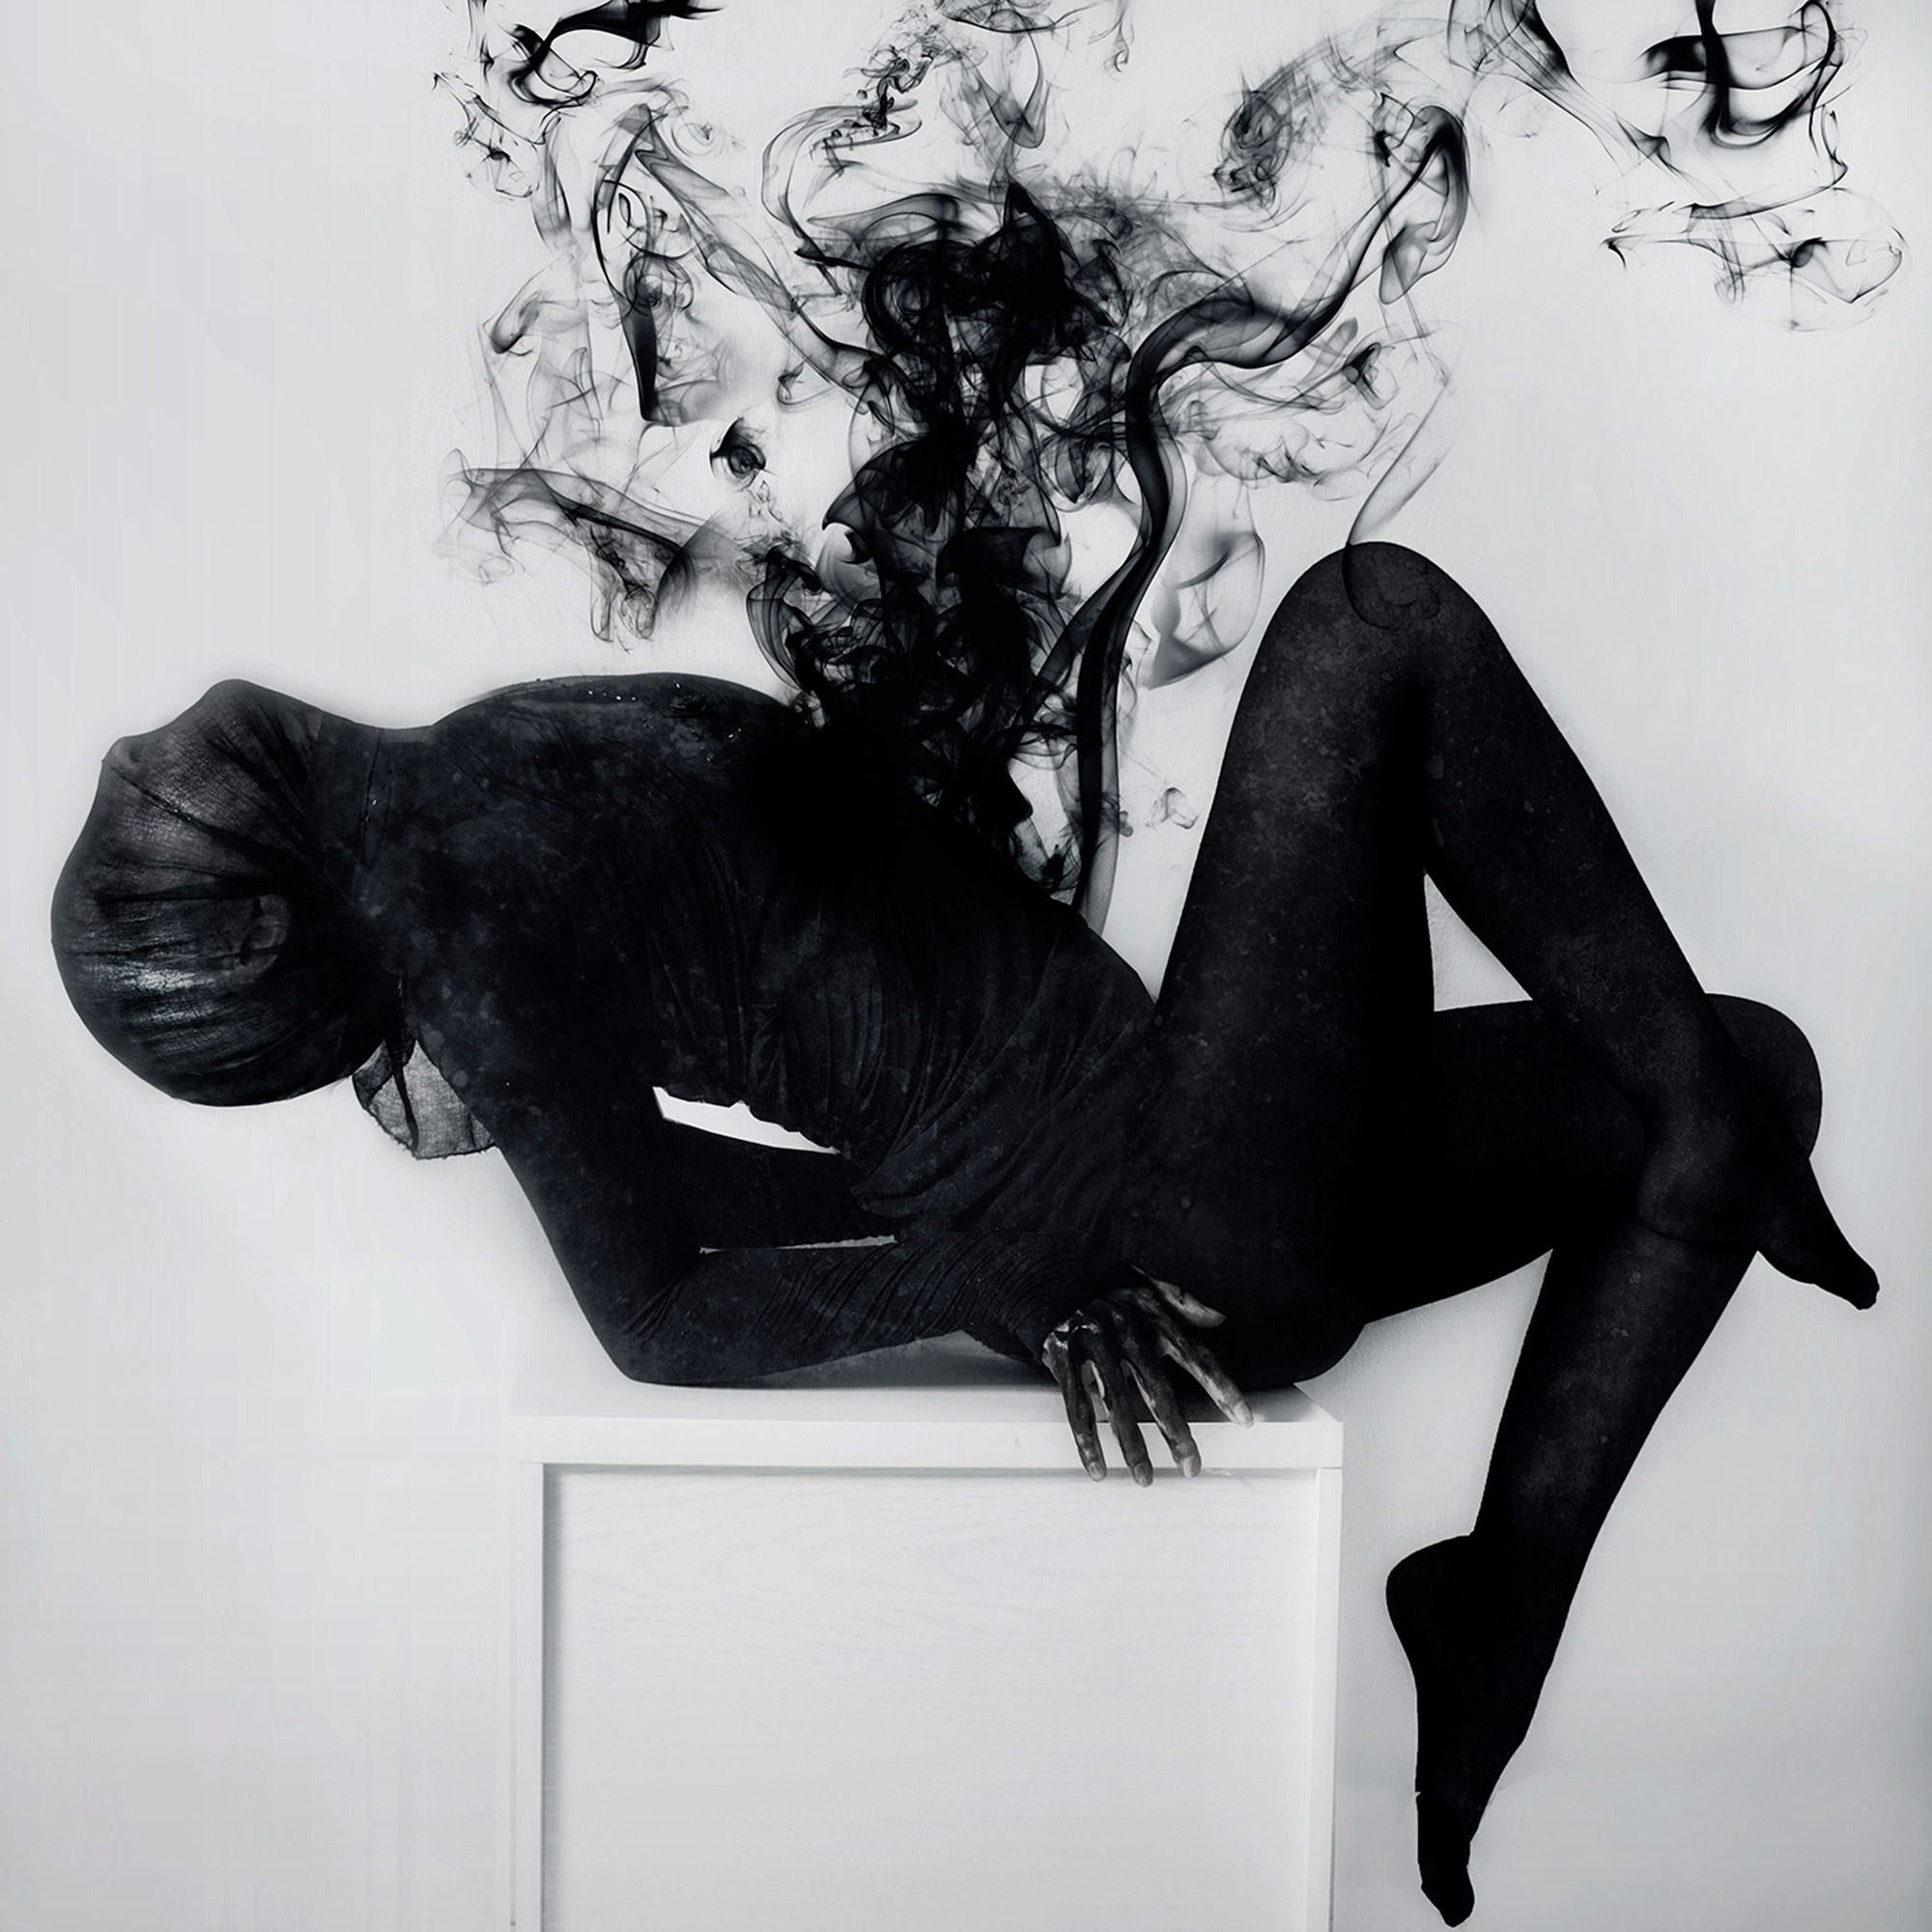 Smoke, Tentacles, and Myth: Photography by Valeria Chorozidi